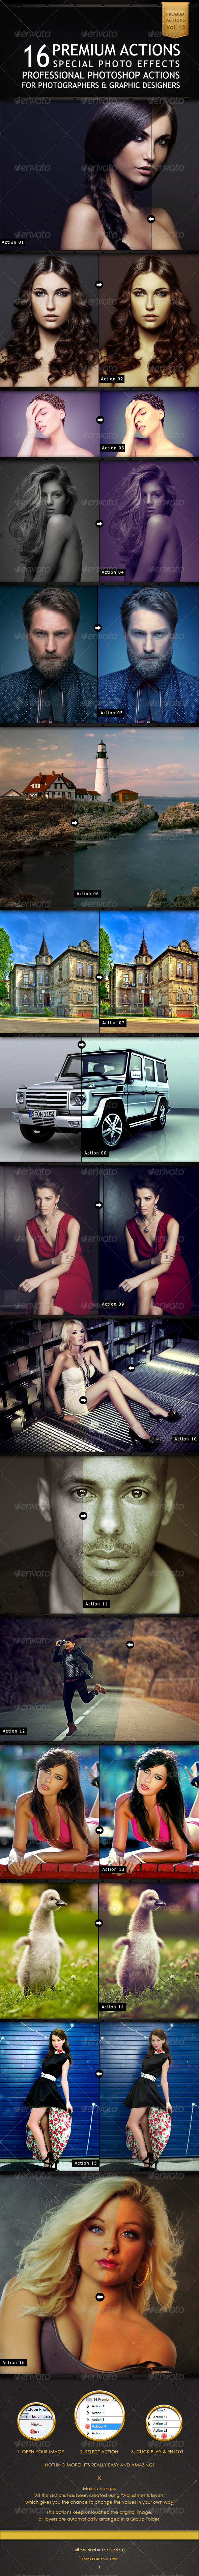 GraphicRiver 16 Premium Actions Set 6864950